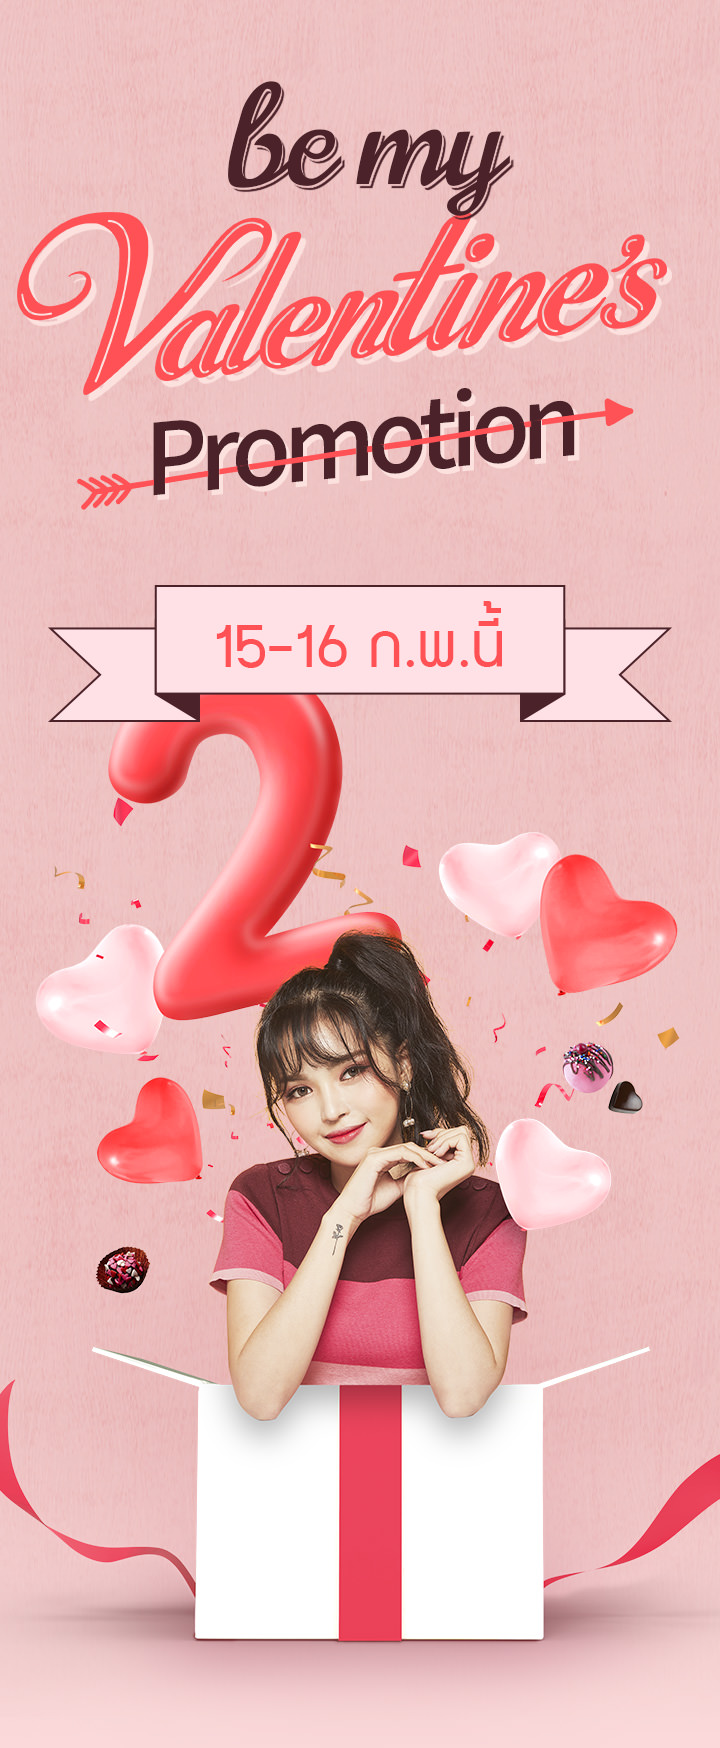 Be my valentine Promotion 15-16 ก.พ. นี้